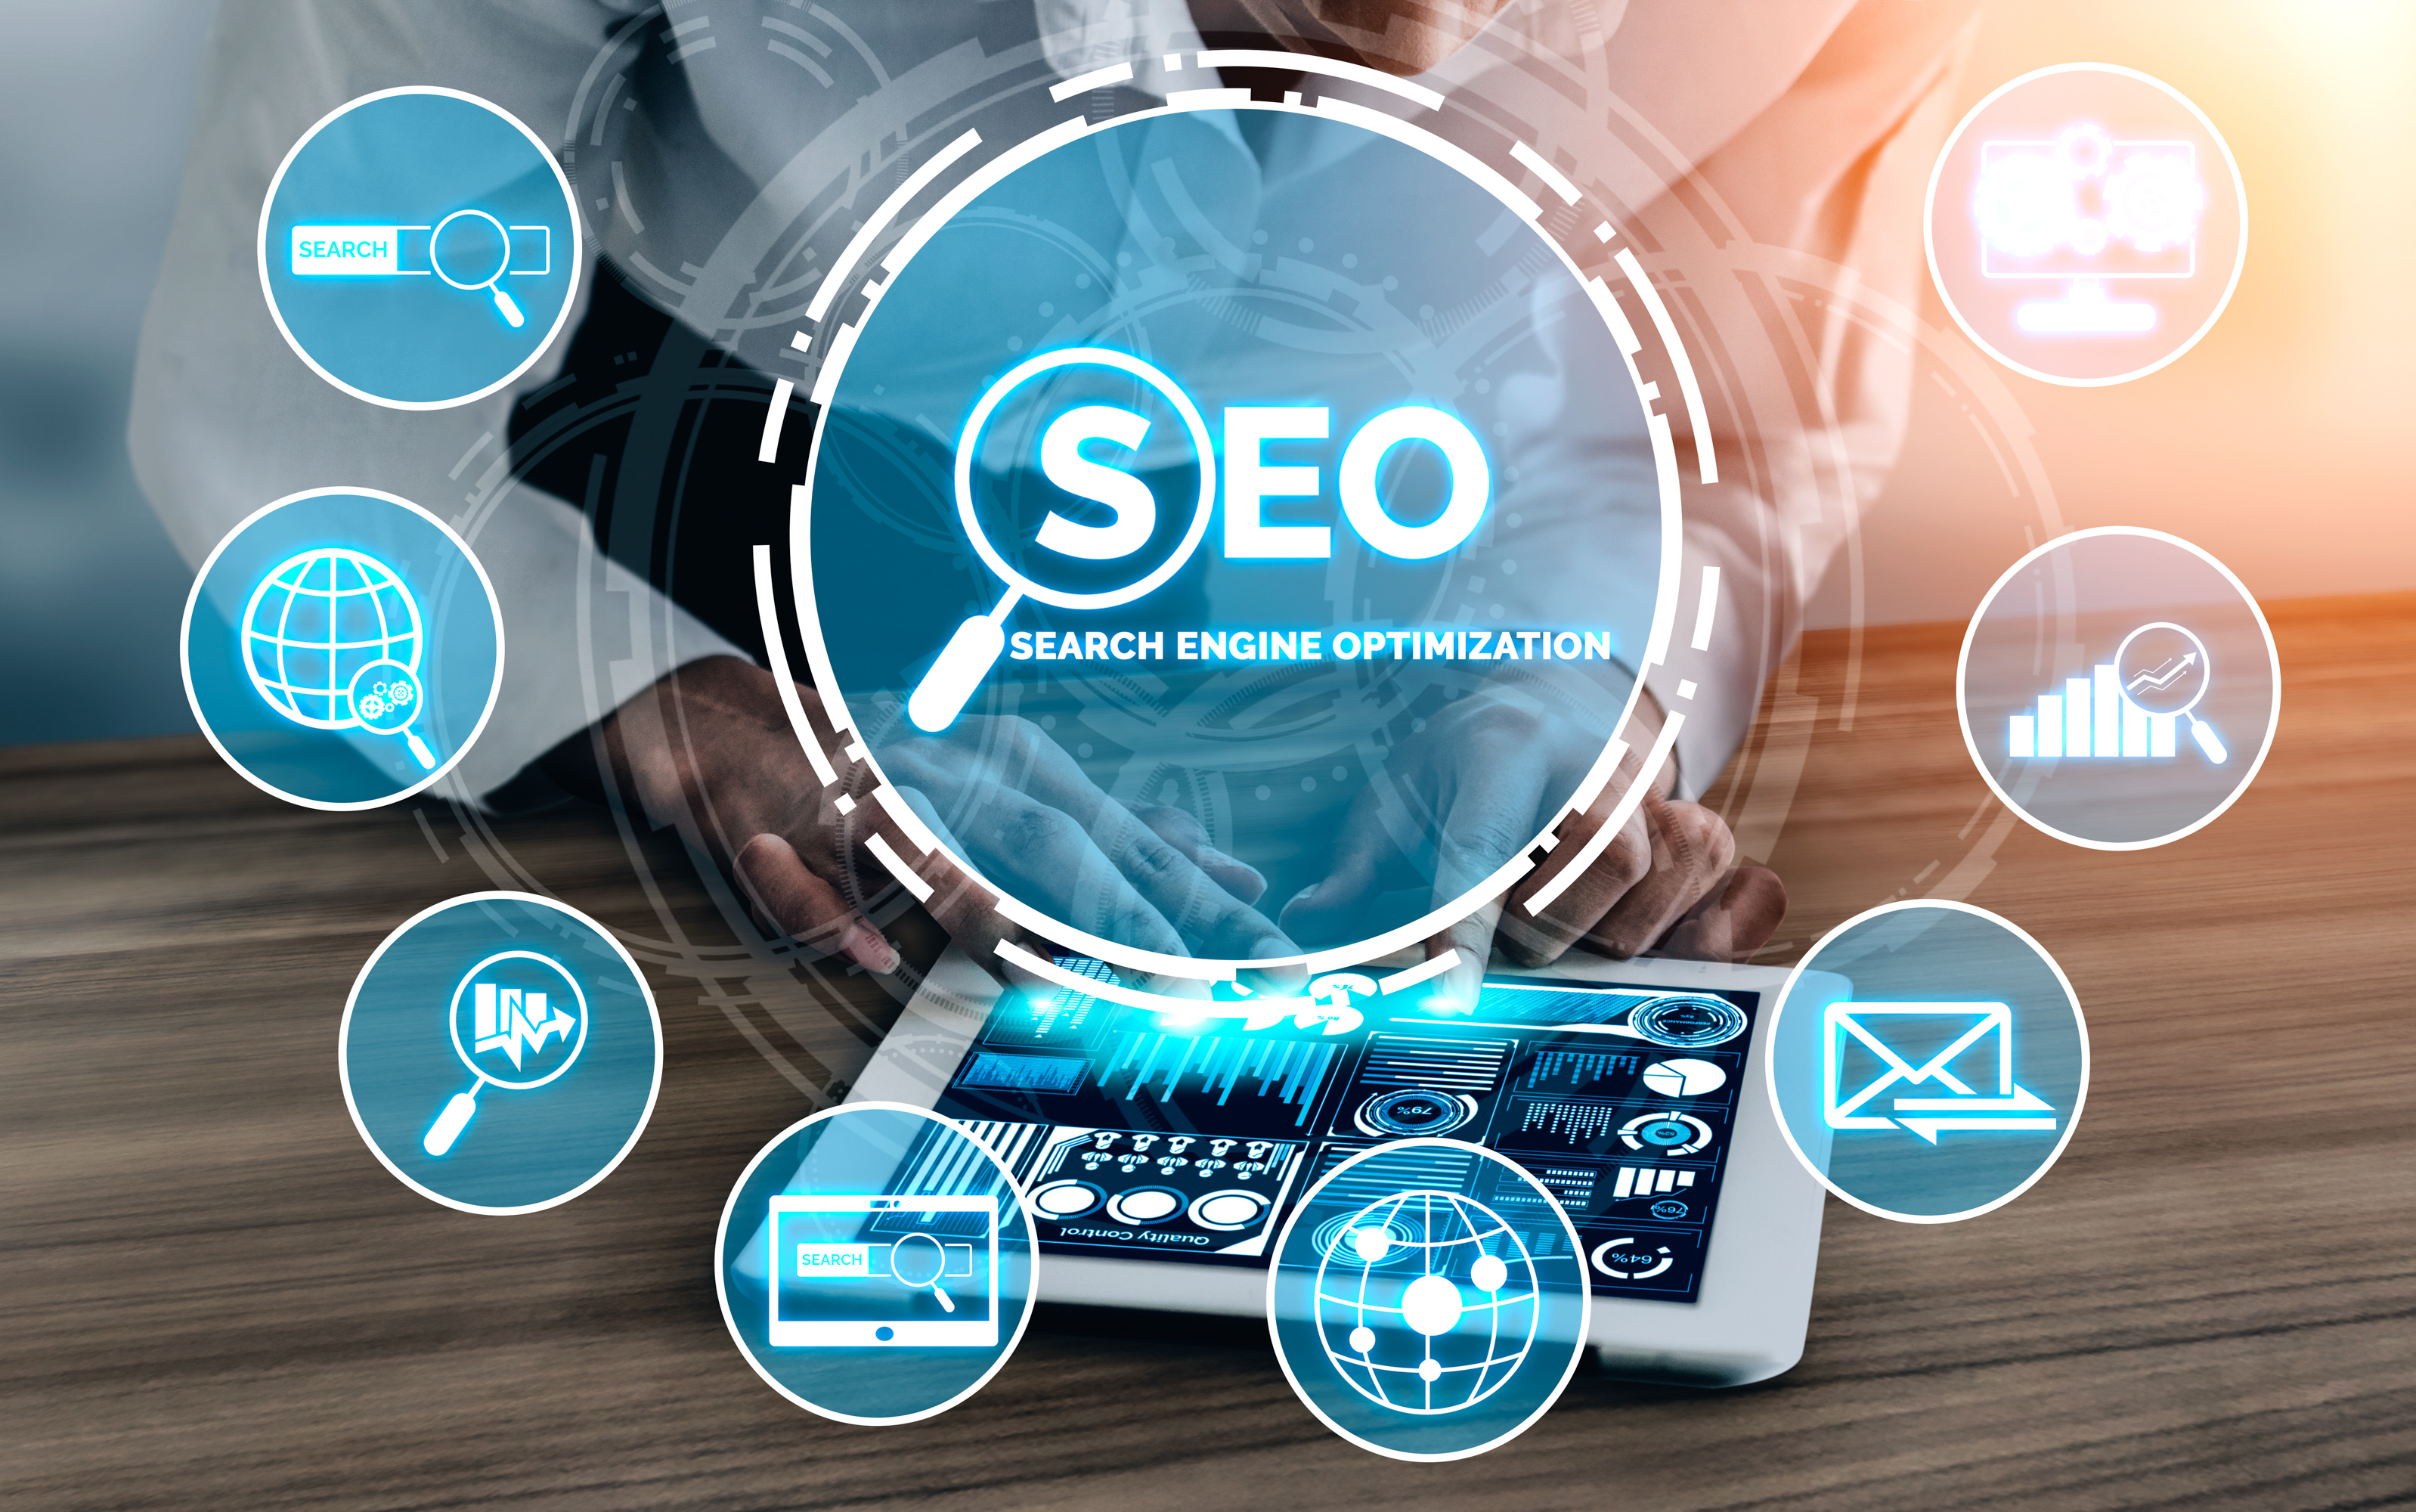 seo search engine optimization business concept - Why Should You Invest in SEO for Your Company?